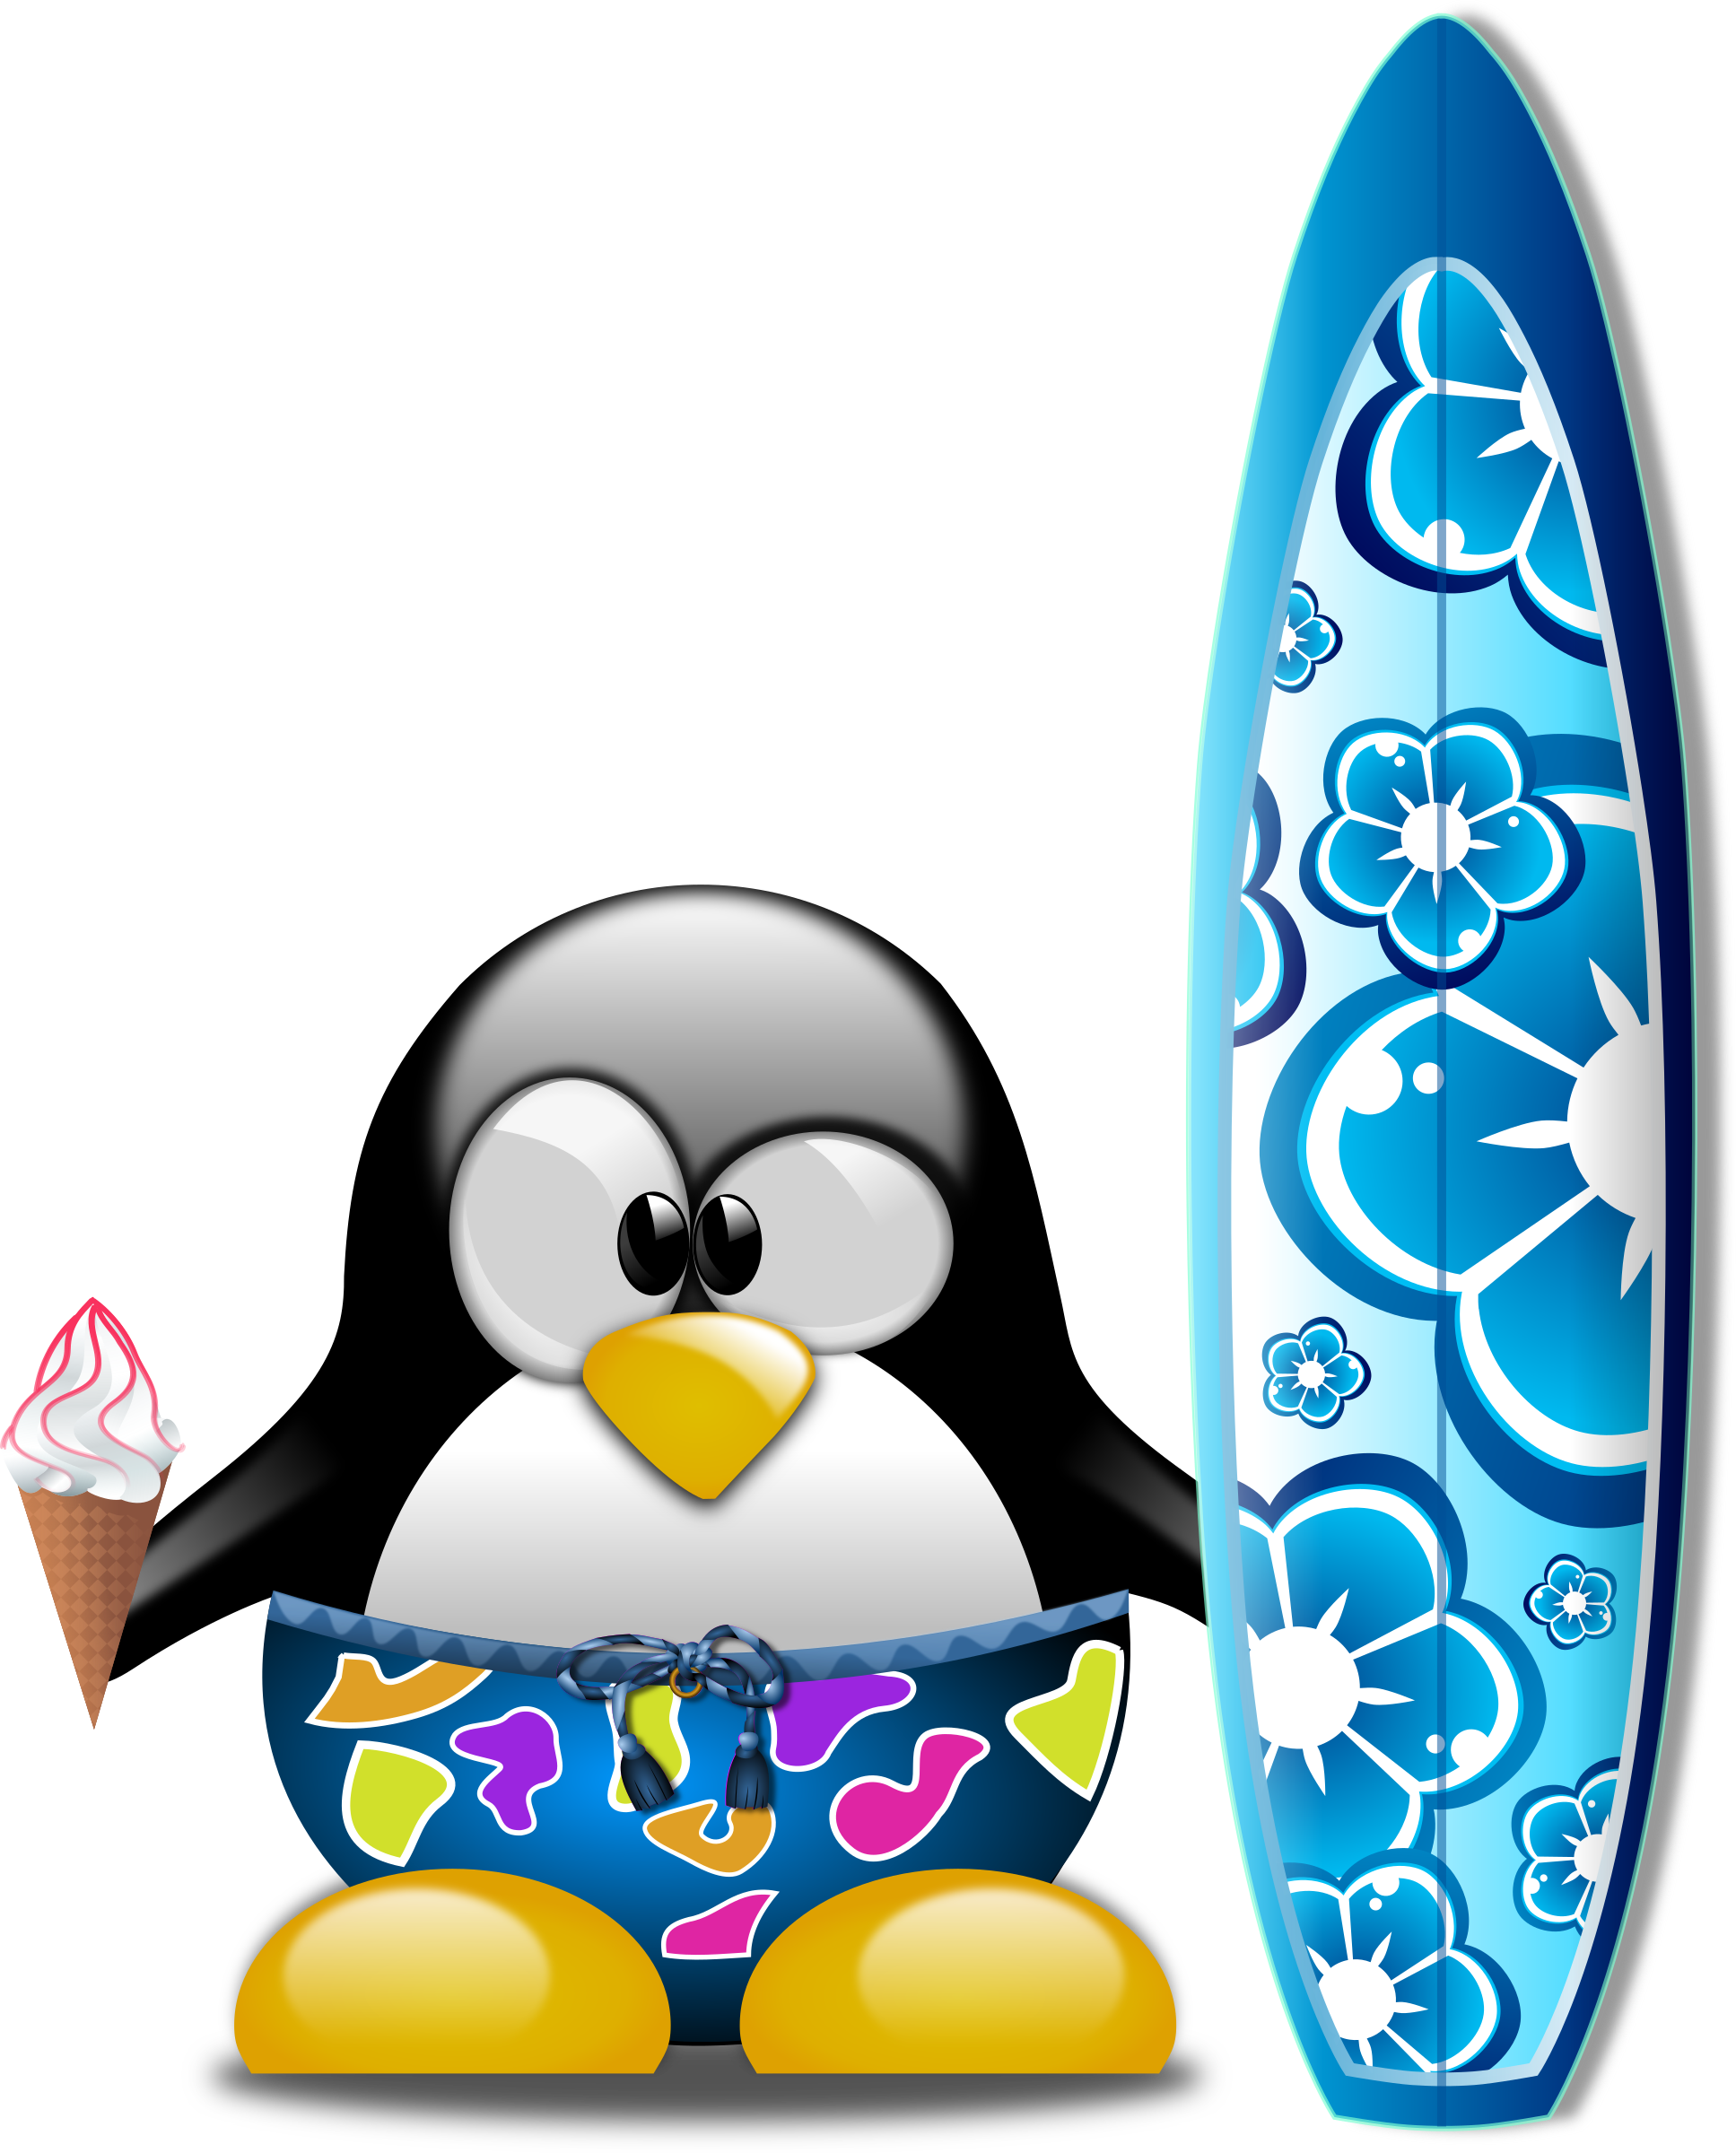 image transparent stock Tux the surfer big. Surfboard clipart surf shorts